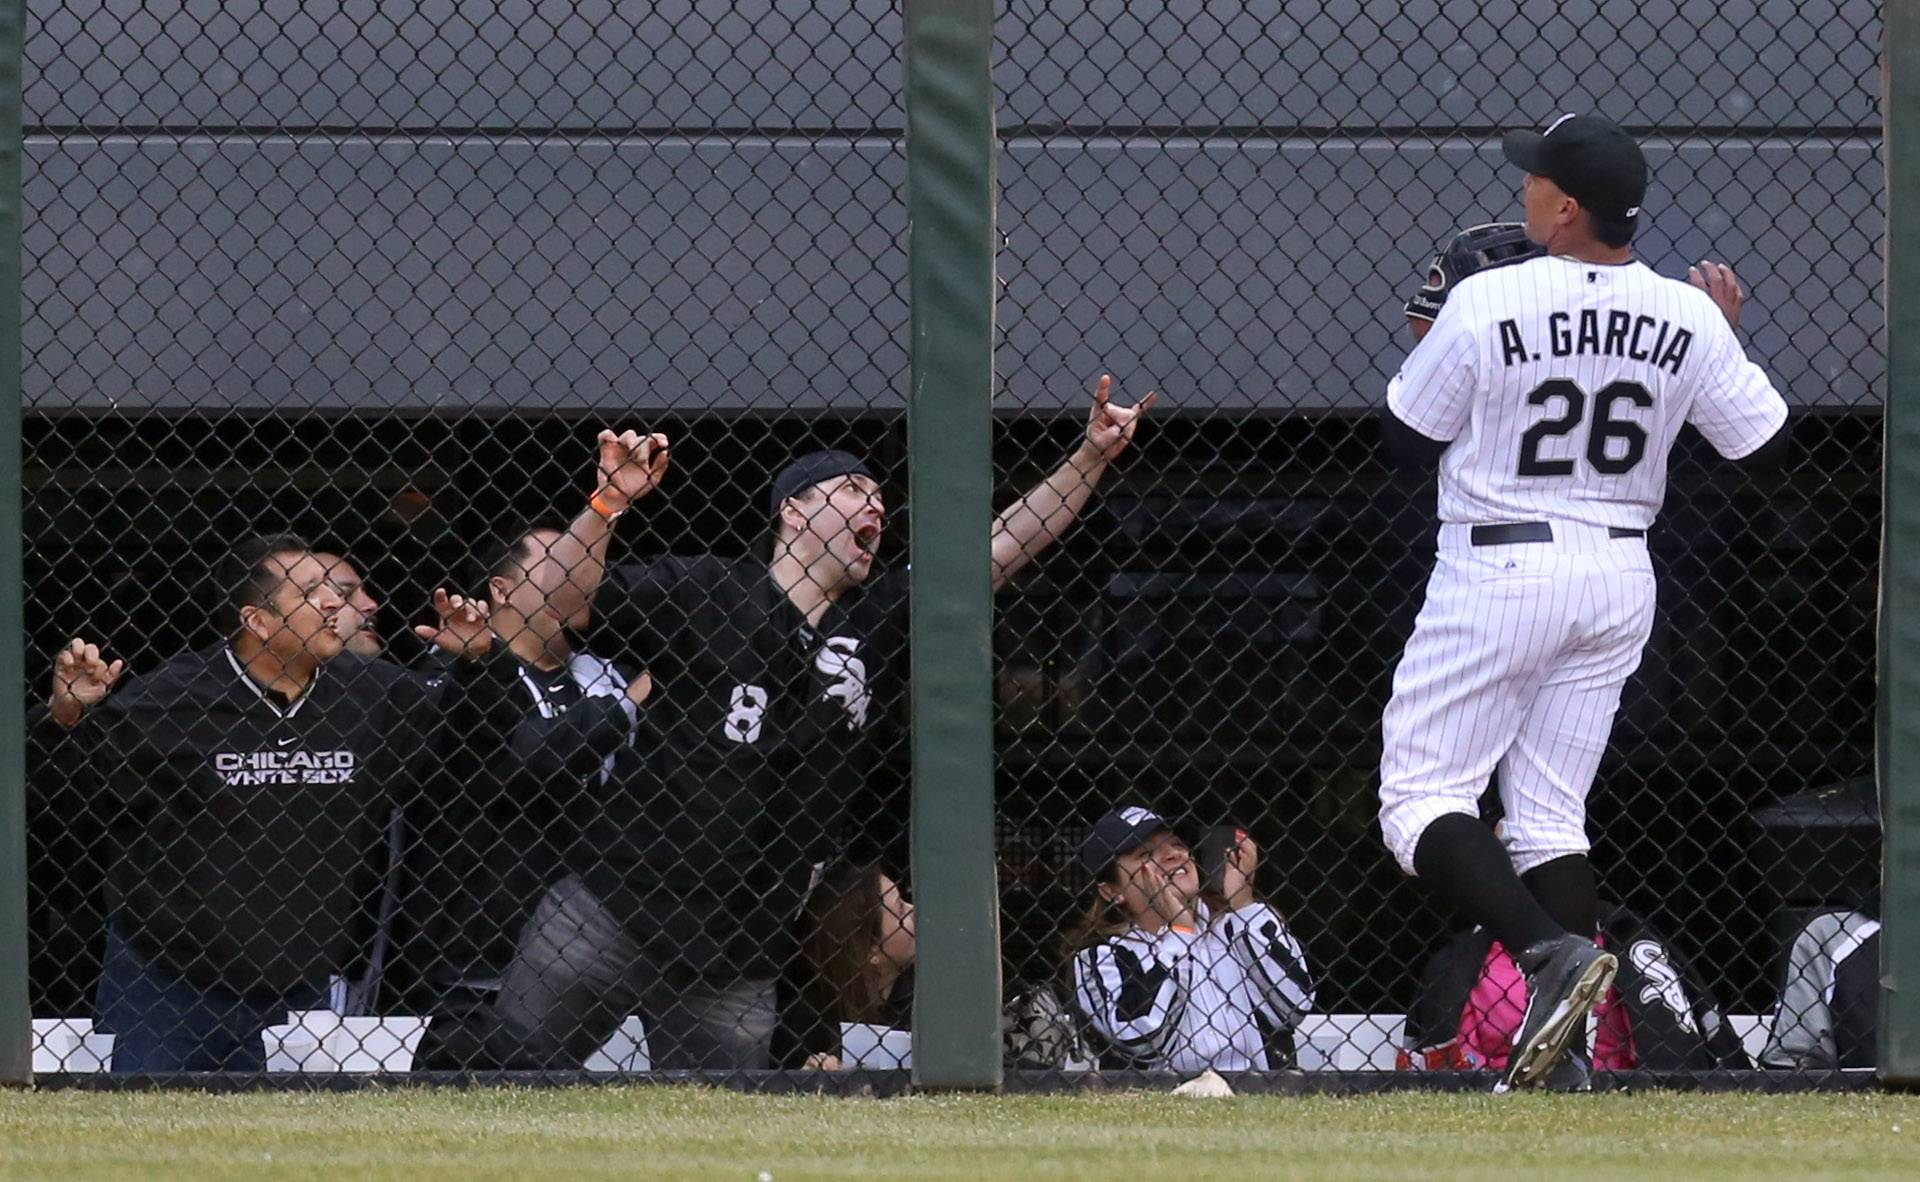 Fans in center field react as White Sox right fielder Avisail Garcia makes a catch late in the game during the home opener against the Minnesota Twins Monday at U.S. Cellular Field.